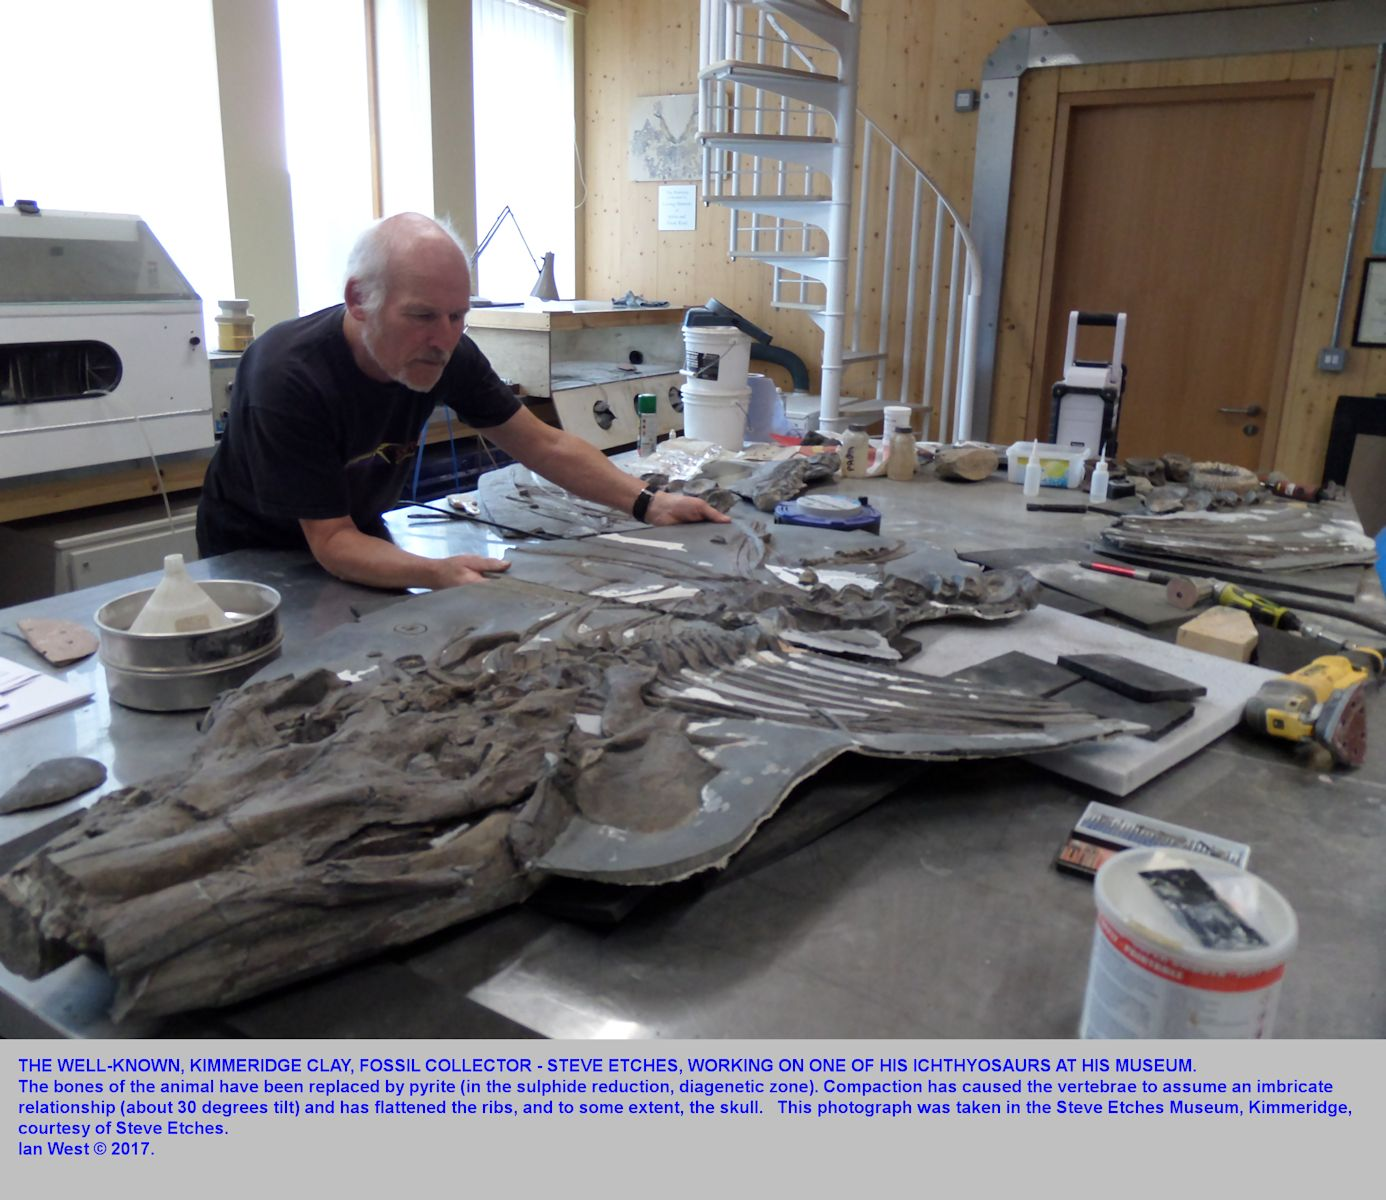 Steve Etches of Kimmeridge, Dorset, positions part of one of his fossil ichthyosaurs, at the Steve Etches Museum at Kimmeridge, 18th September 2017